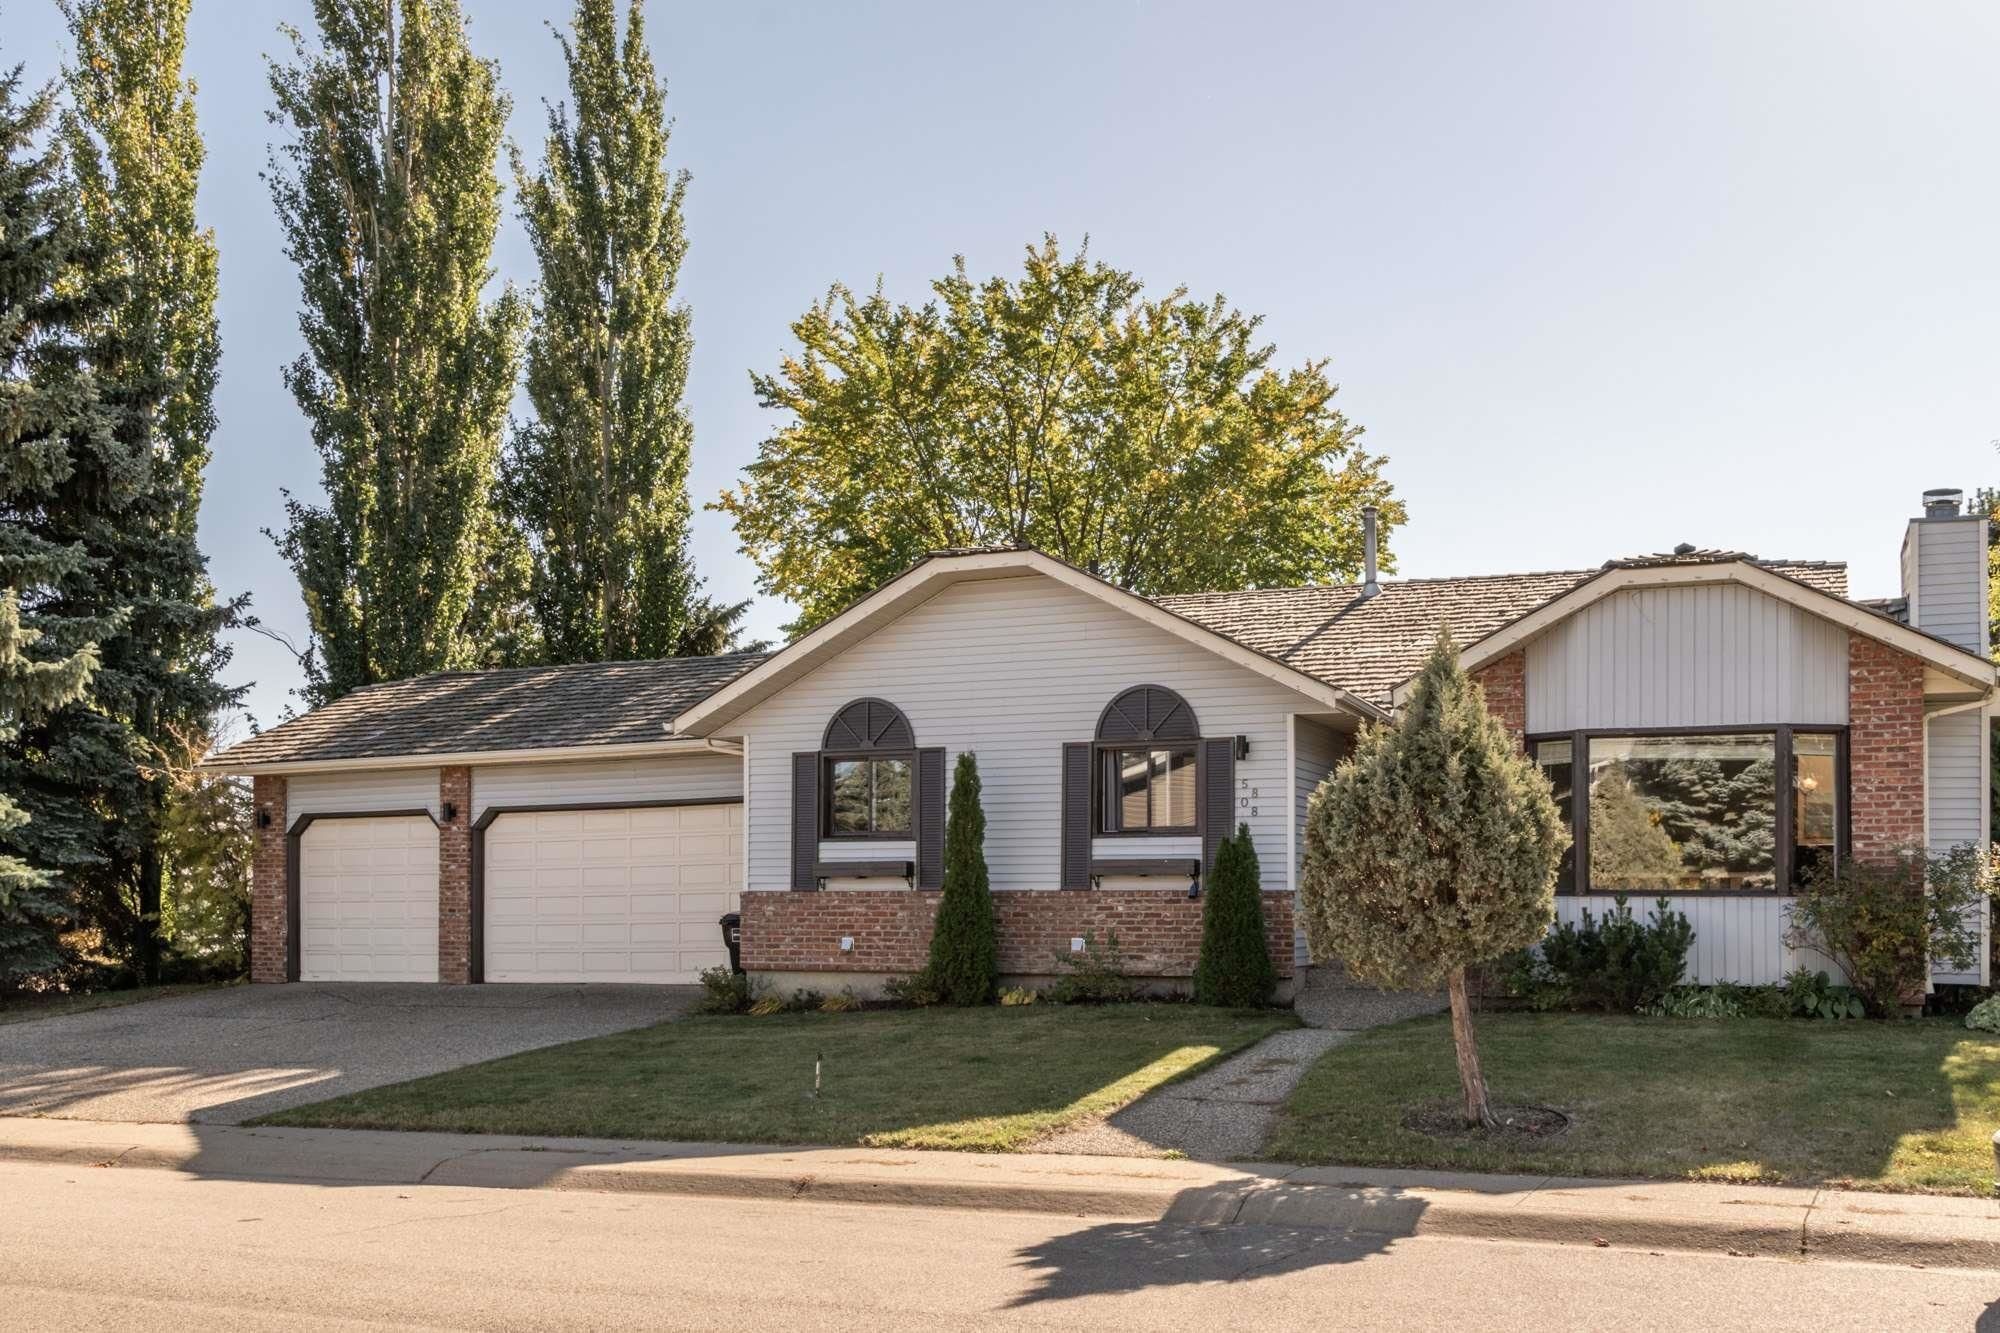 Main Photo: 5808 181 Street NW in Edmonton: Zone 20 House for sale : MLS®# E4265199